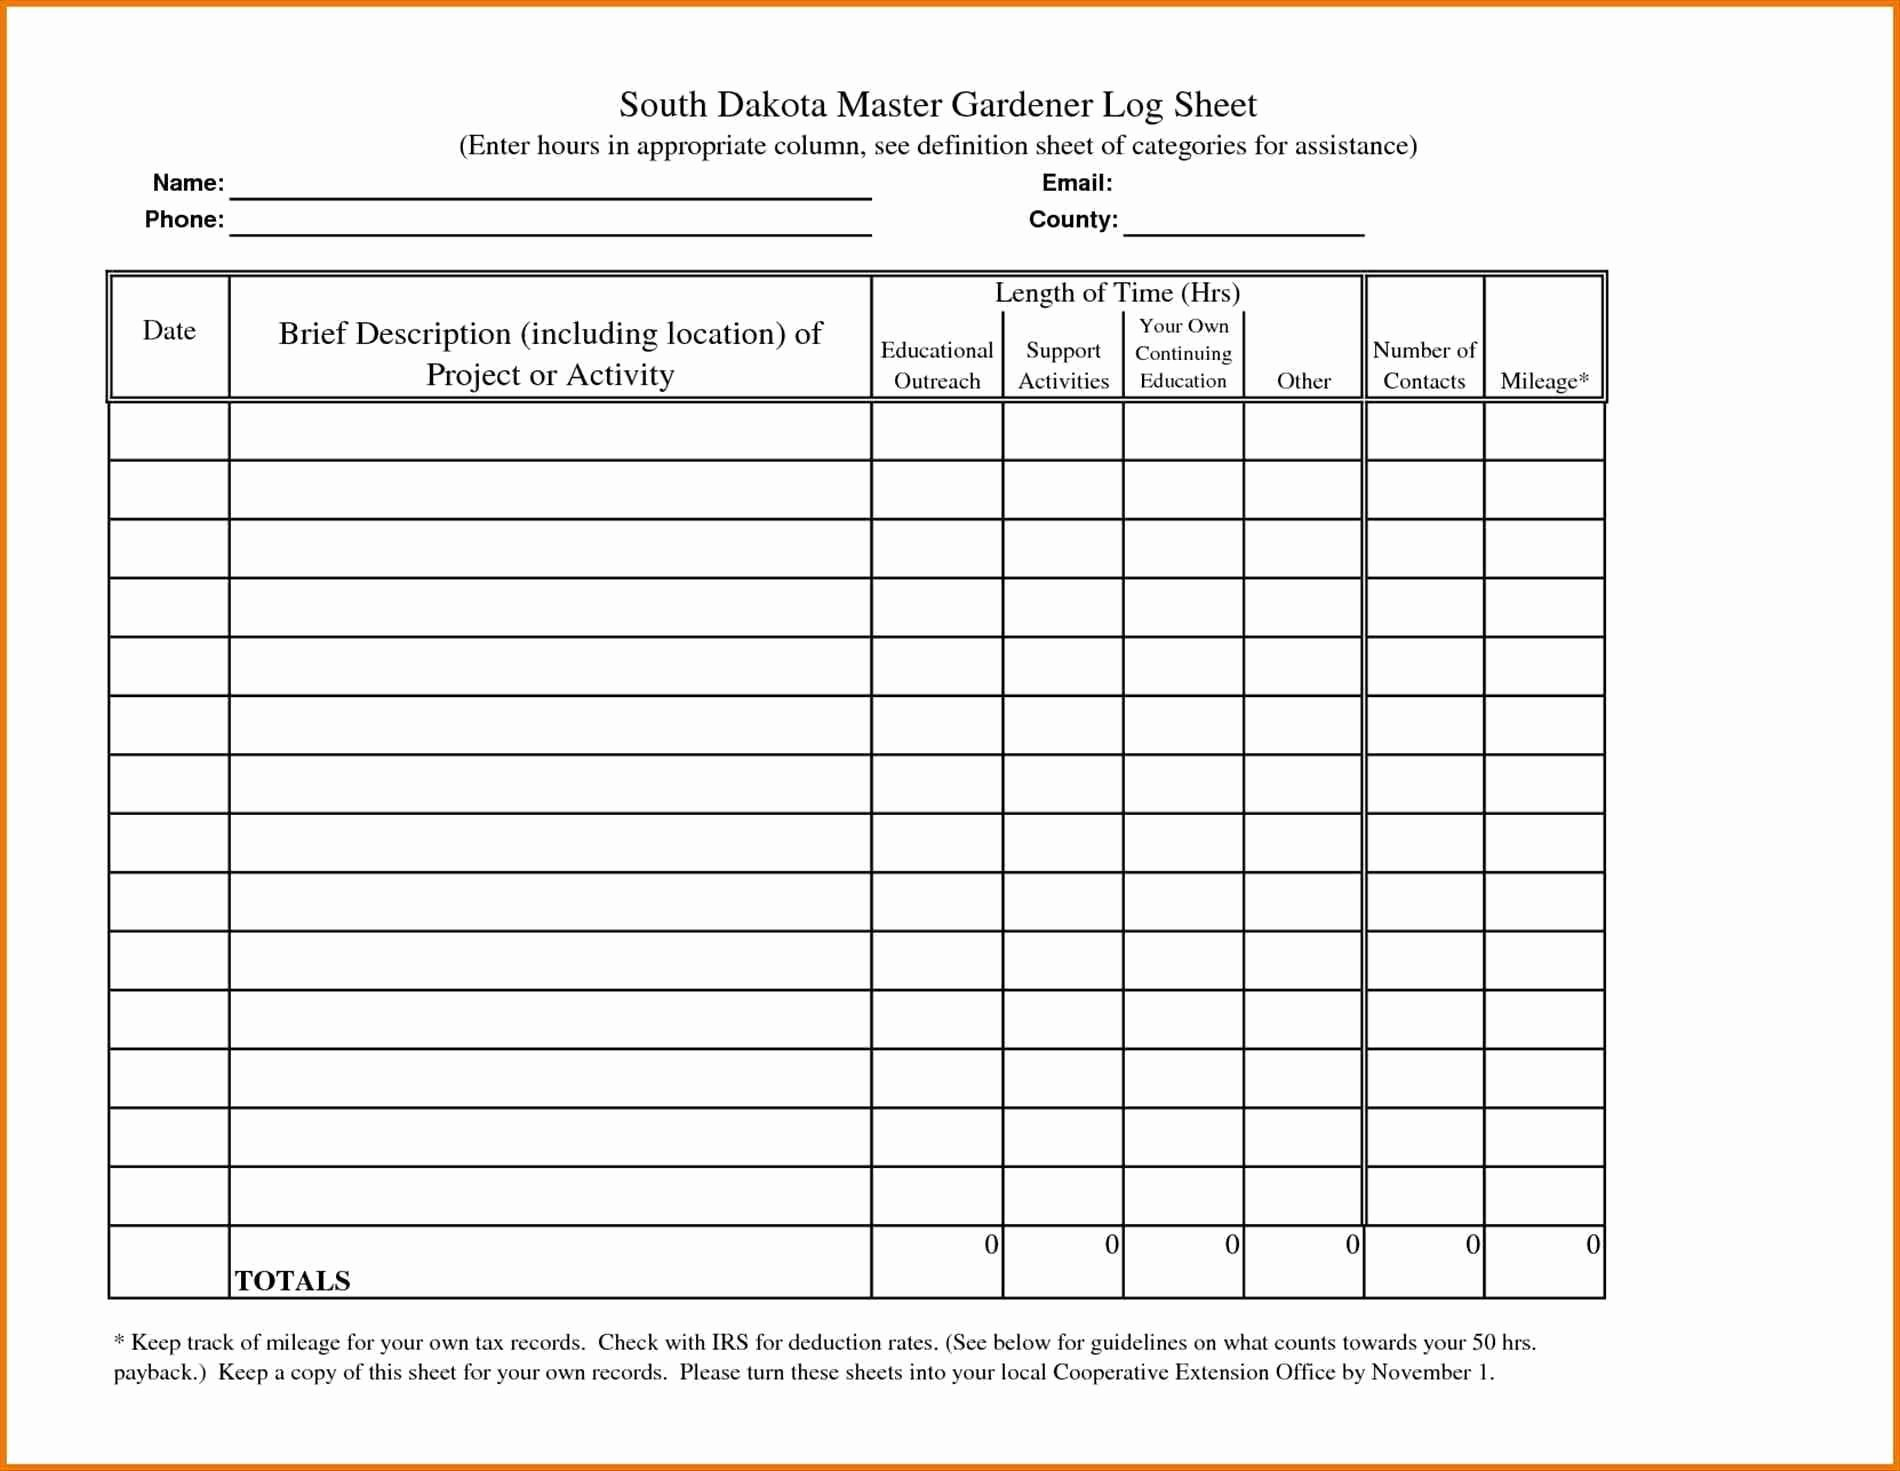 Sign In Sheet Template Doc Inspirational Sign In Sheet Template Doc Sign In Sheet Template Word